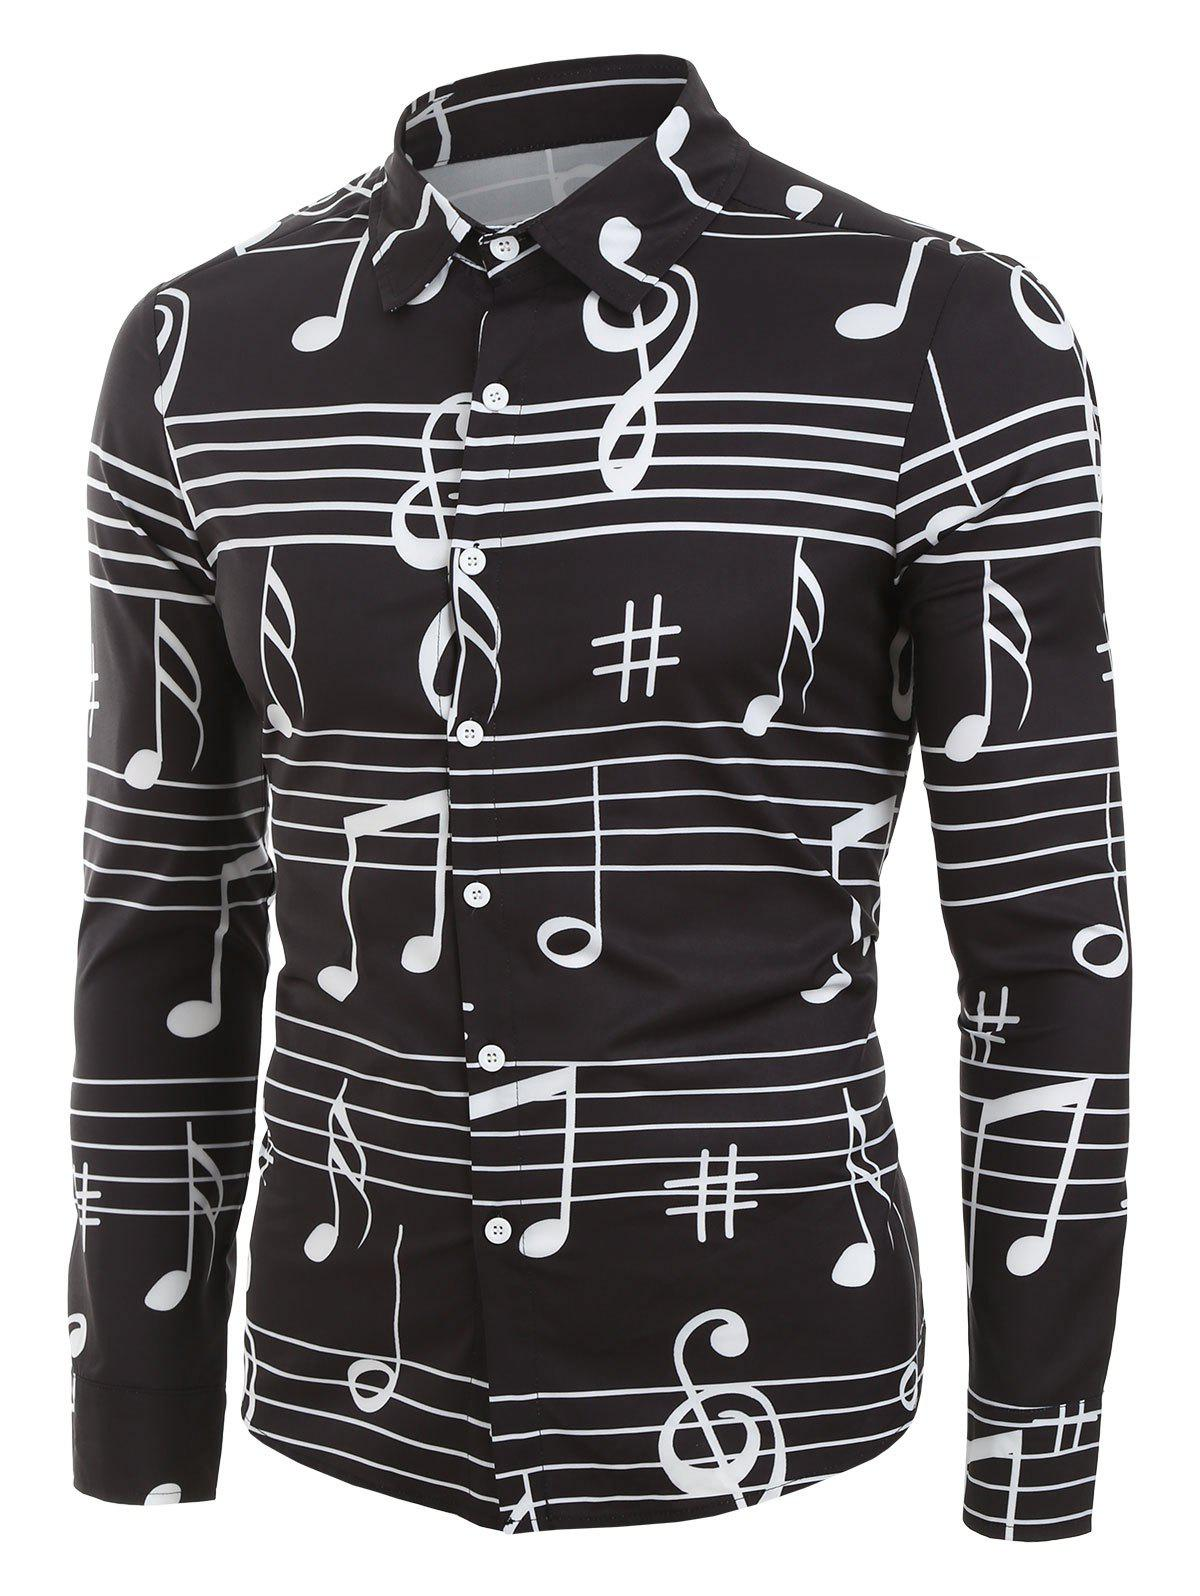 Music Notes Print Long Sleeve Button Up Festival Shirt - BLACK L